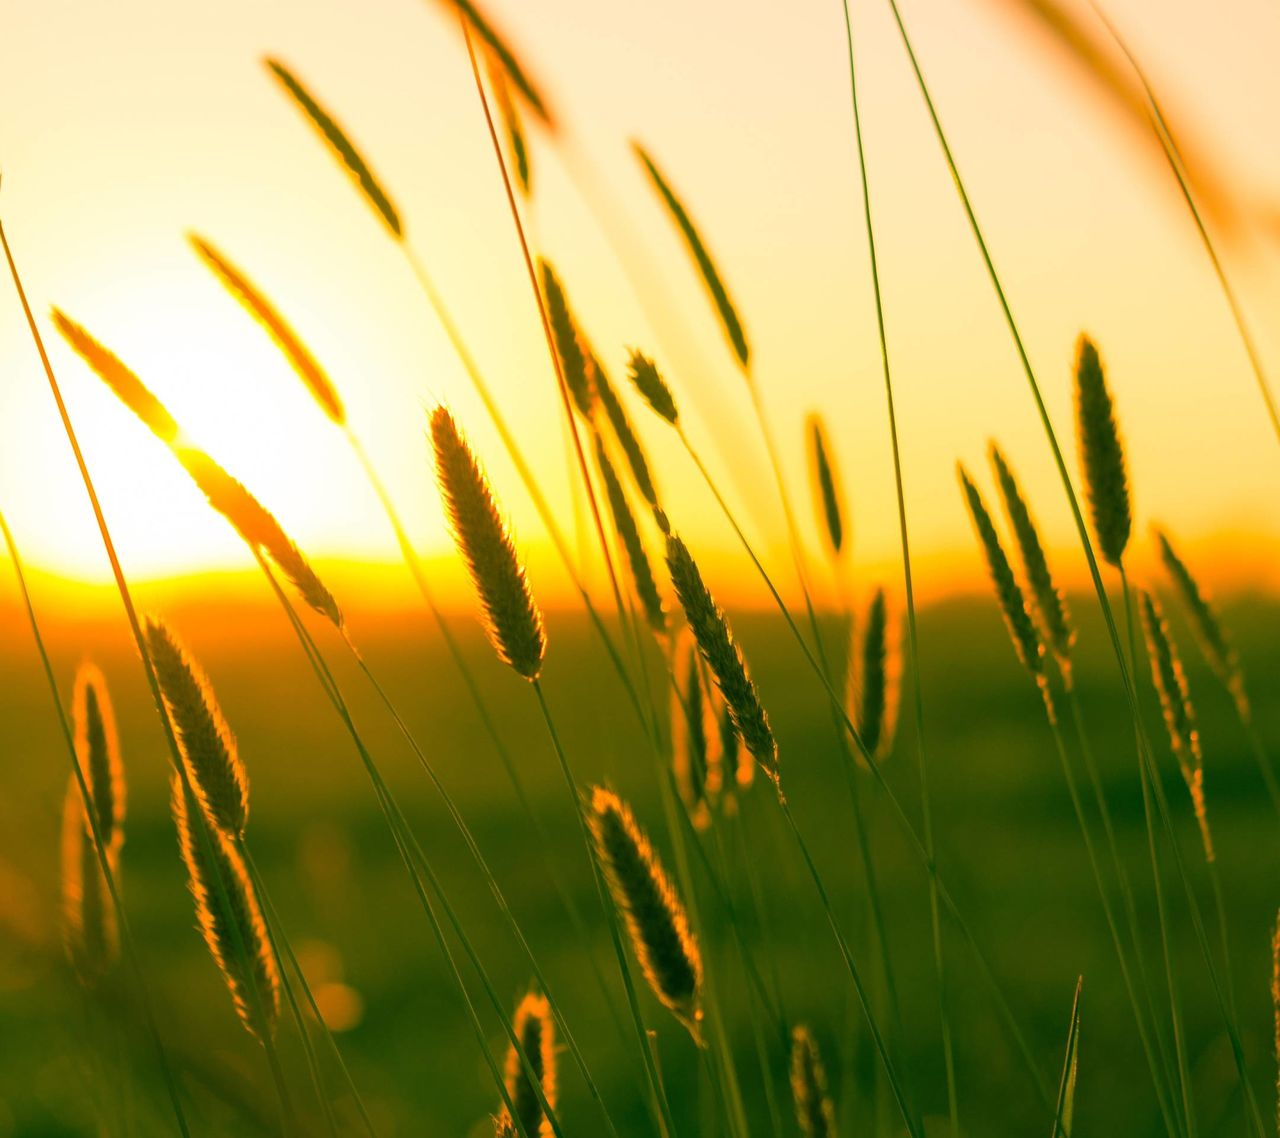 growth, nature, plant, field, sunset, beauty in nature, grass, crop, summer, tranquility, agriculture, no people, outdoors, tranquil scene, rural scene, wheat, cereal plant, freshness, close-up, scenics, flower, yellow, timothy grass, sky, day